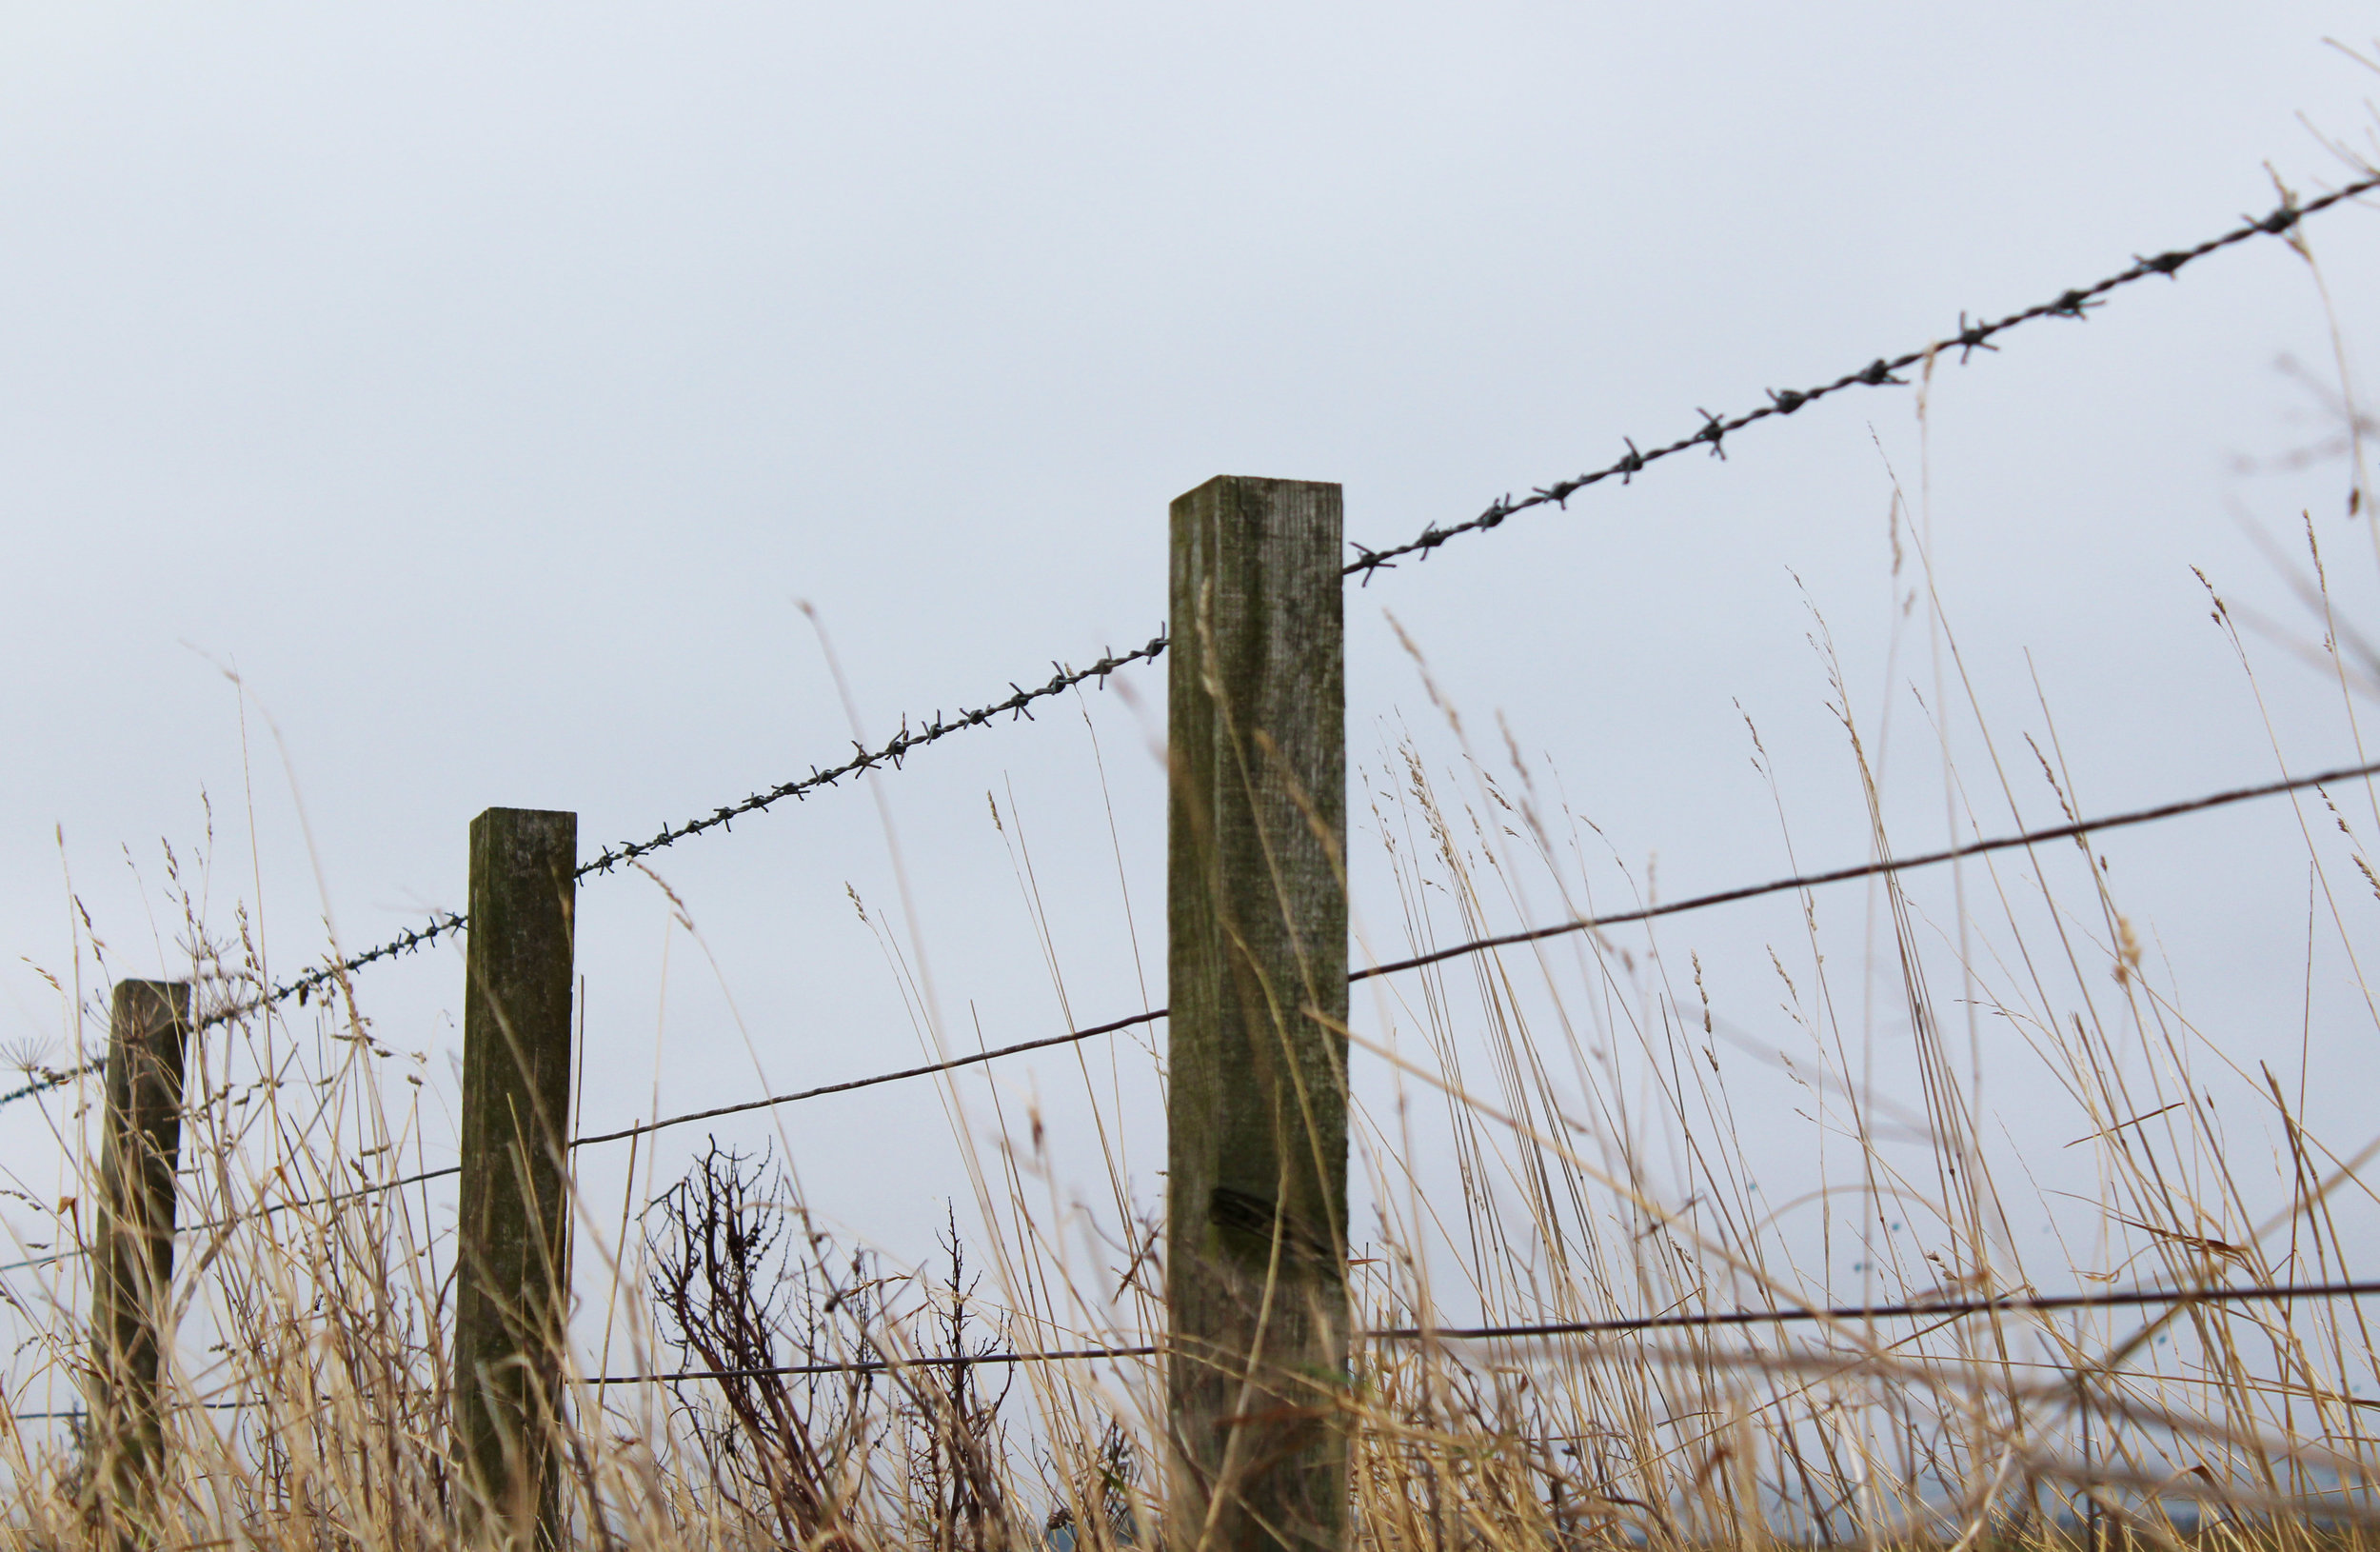 Barbed wire fencing commonly used for creating boundaries in the landscape ( photographed outside of Gifford in East Lothian, Scotland)